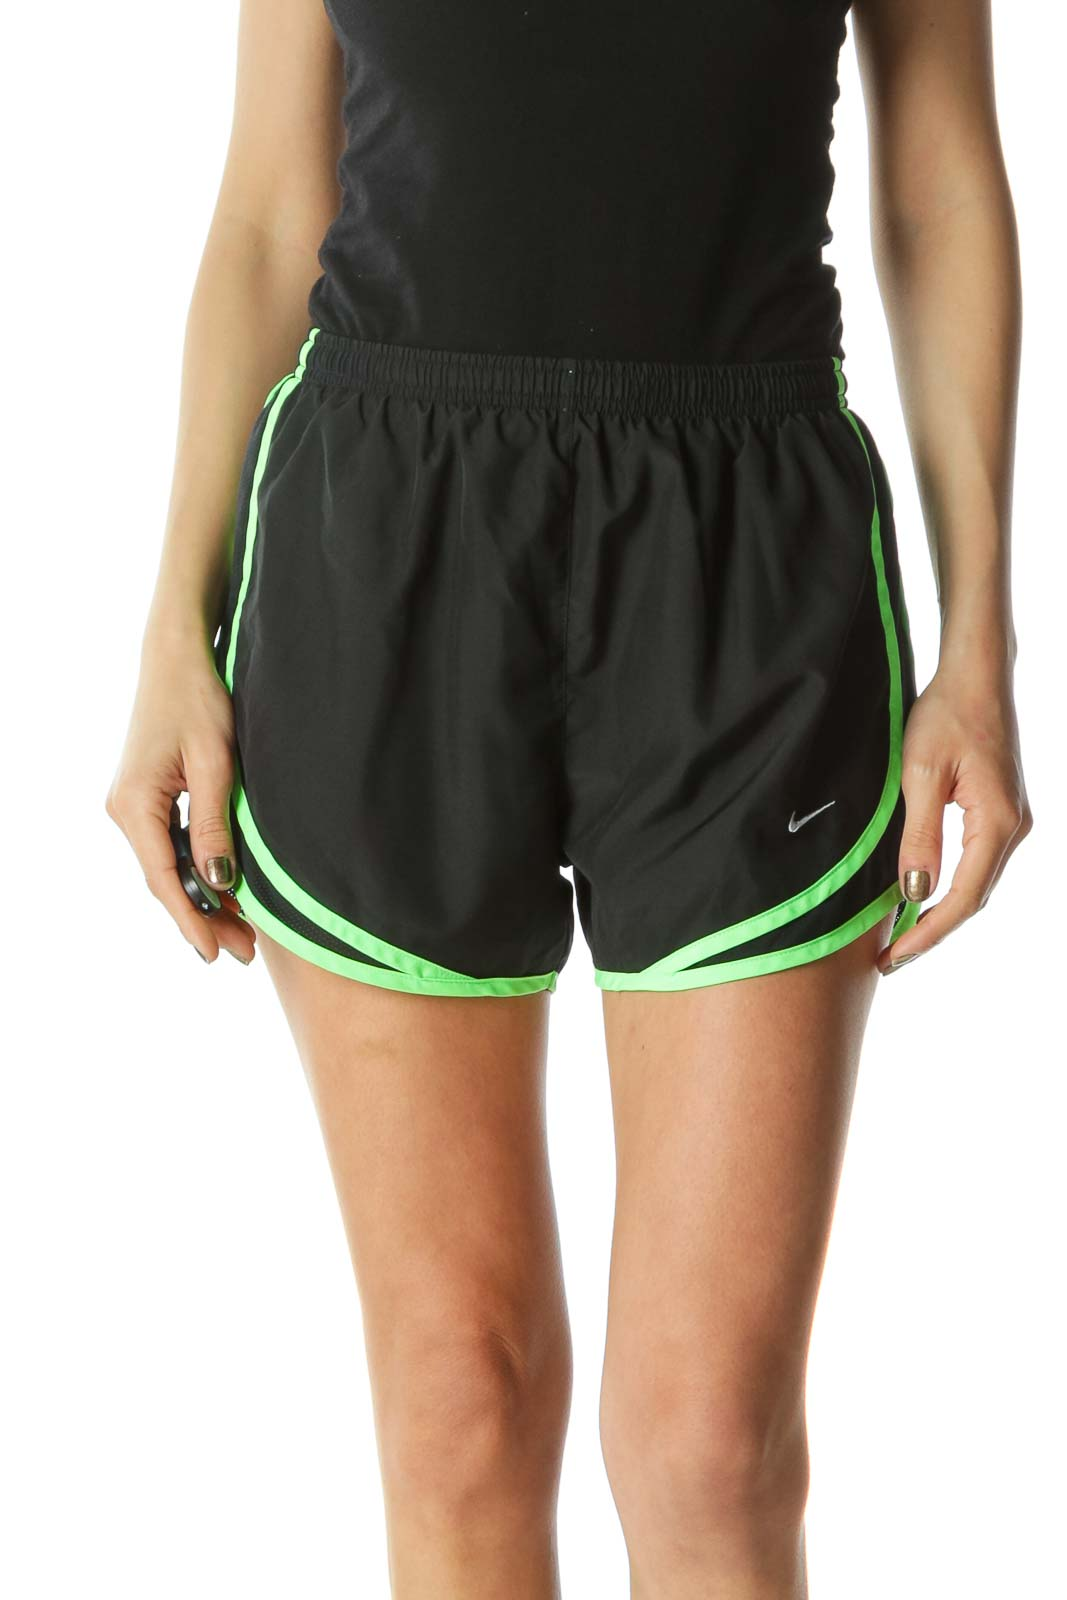 Black and Green Workout Short with Inside Lining